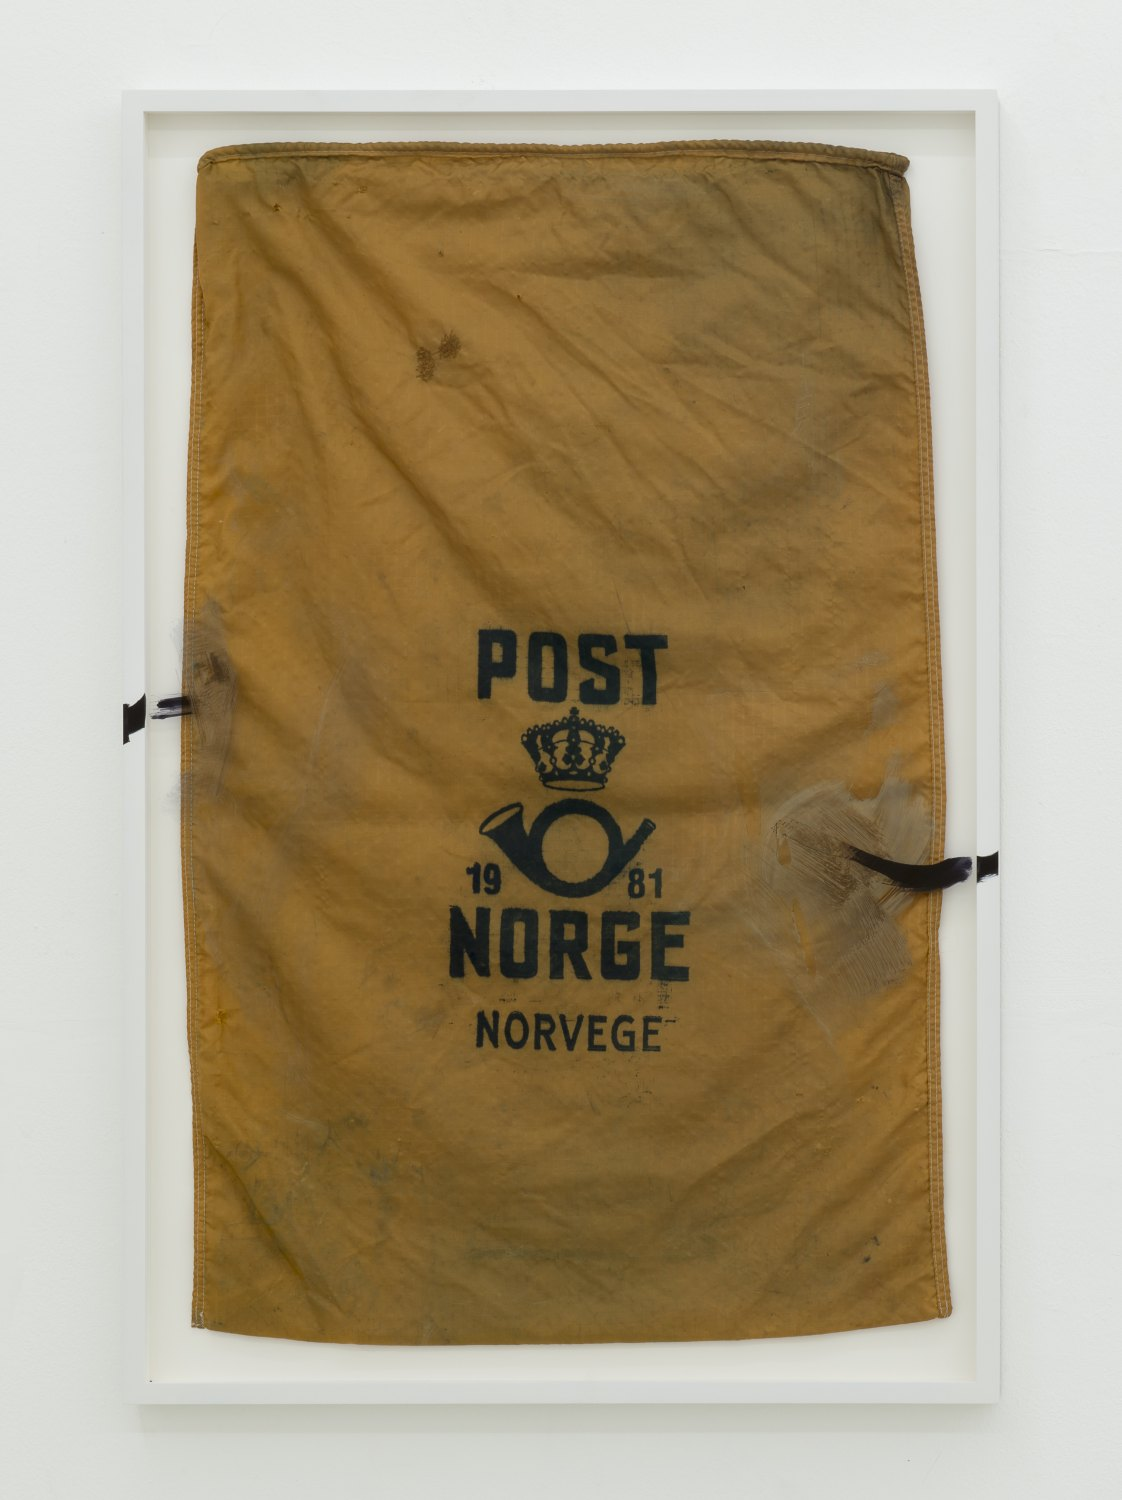 Matias Faldbakken Untitled (post bag), 2013 Canvas, frame, paint, 119.7 × 79.8 cm